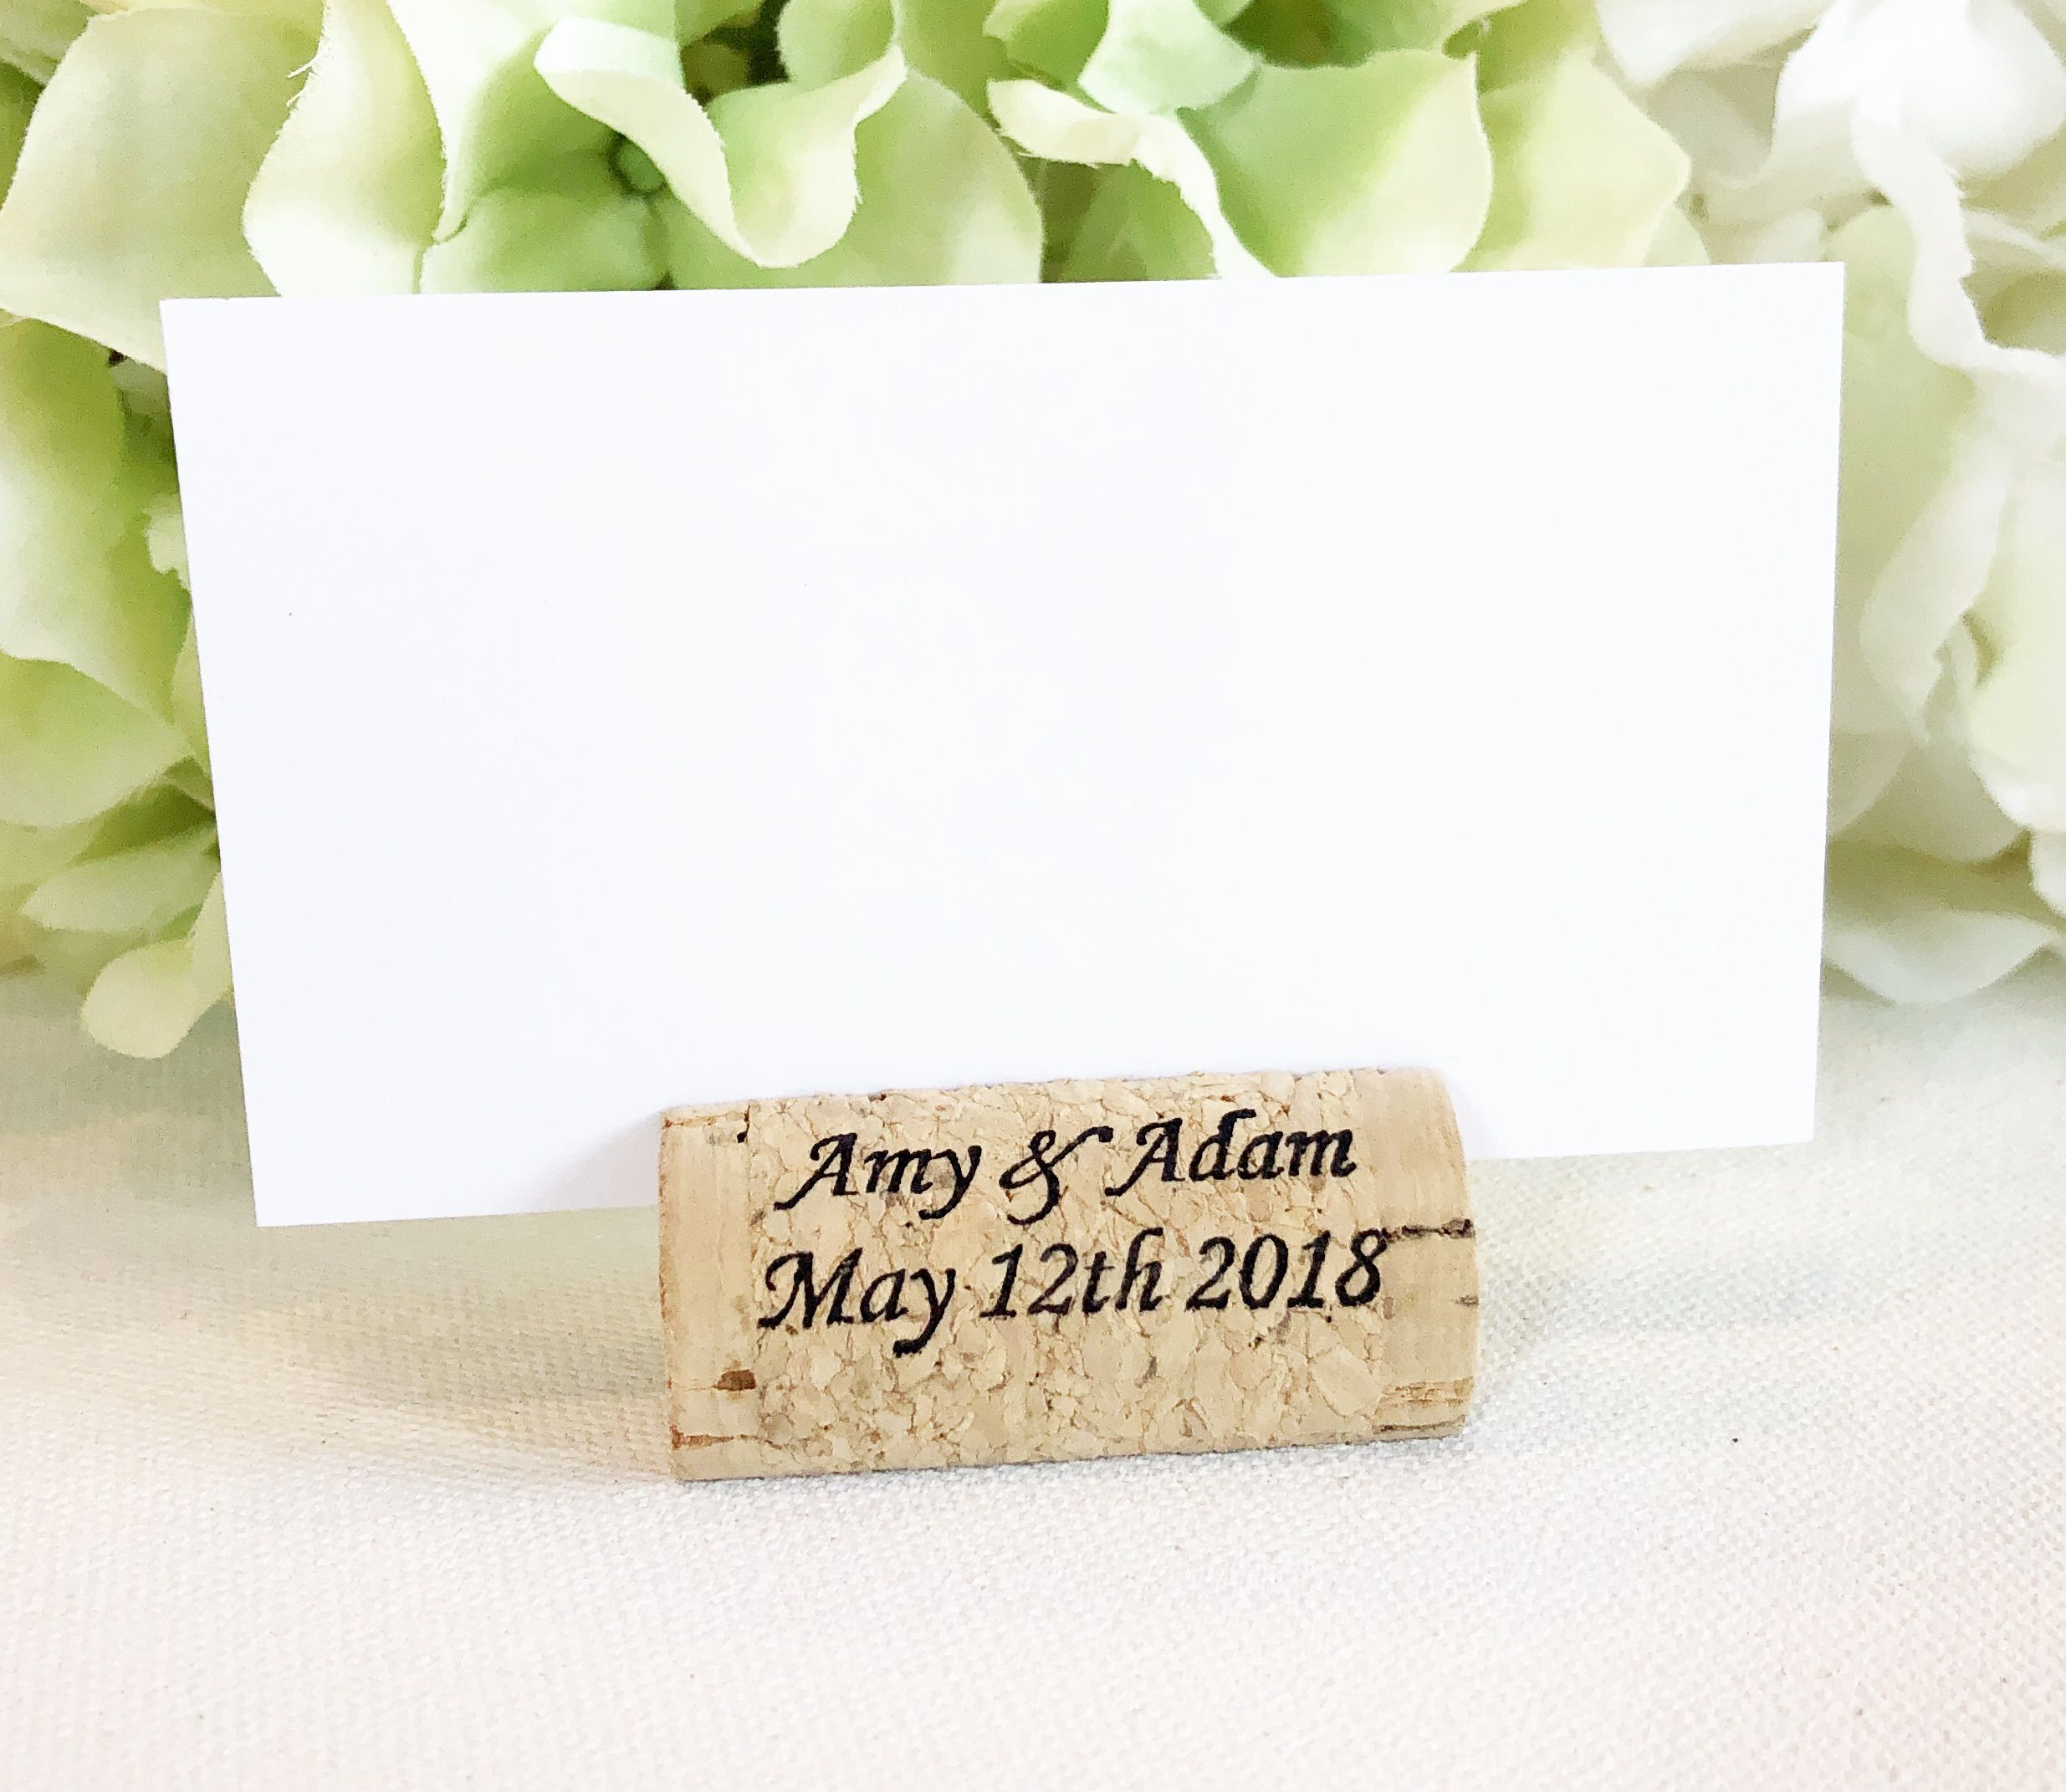 Wine Cork Place Card Holder - Build Your Own | Place card, Rustic ...